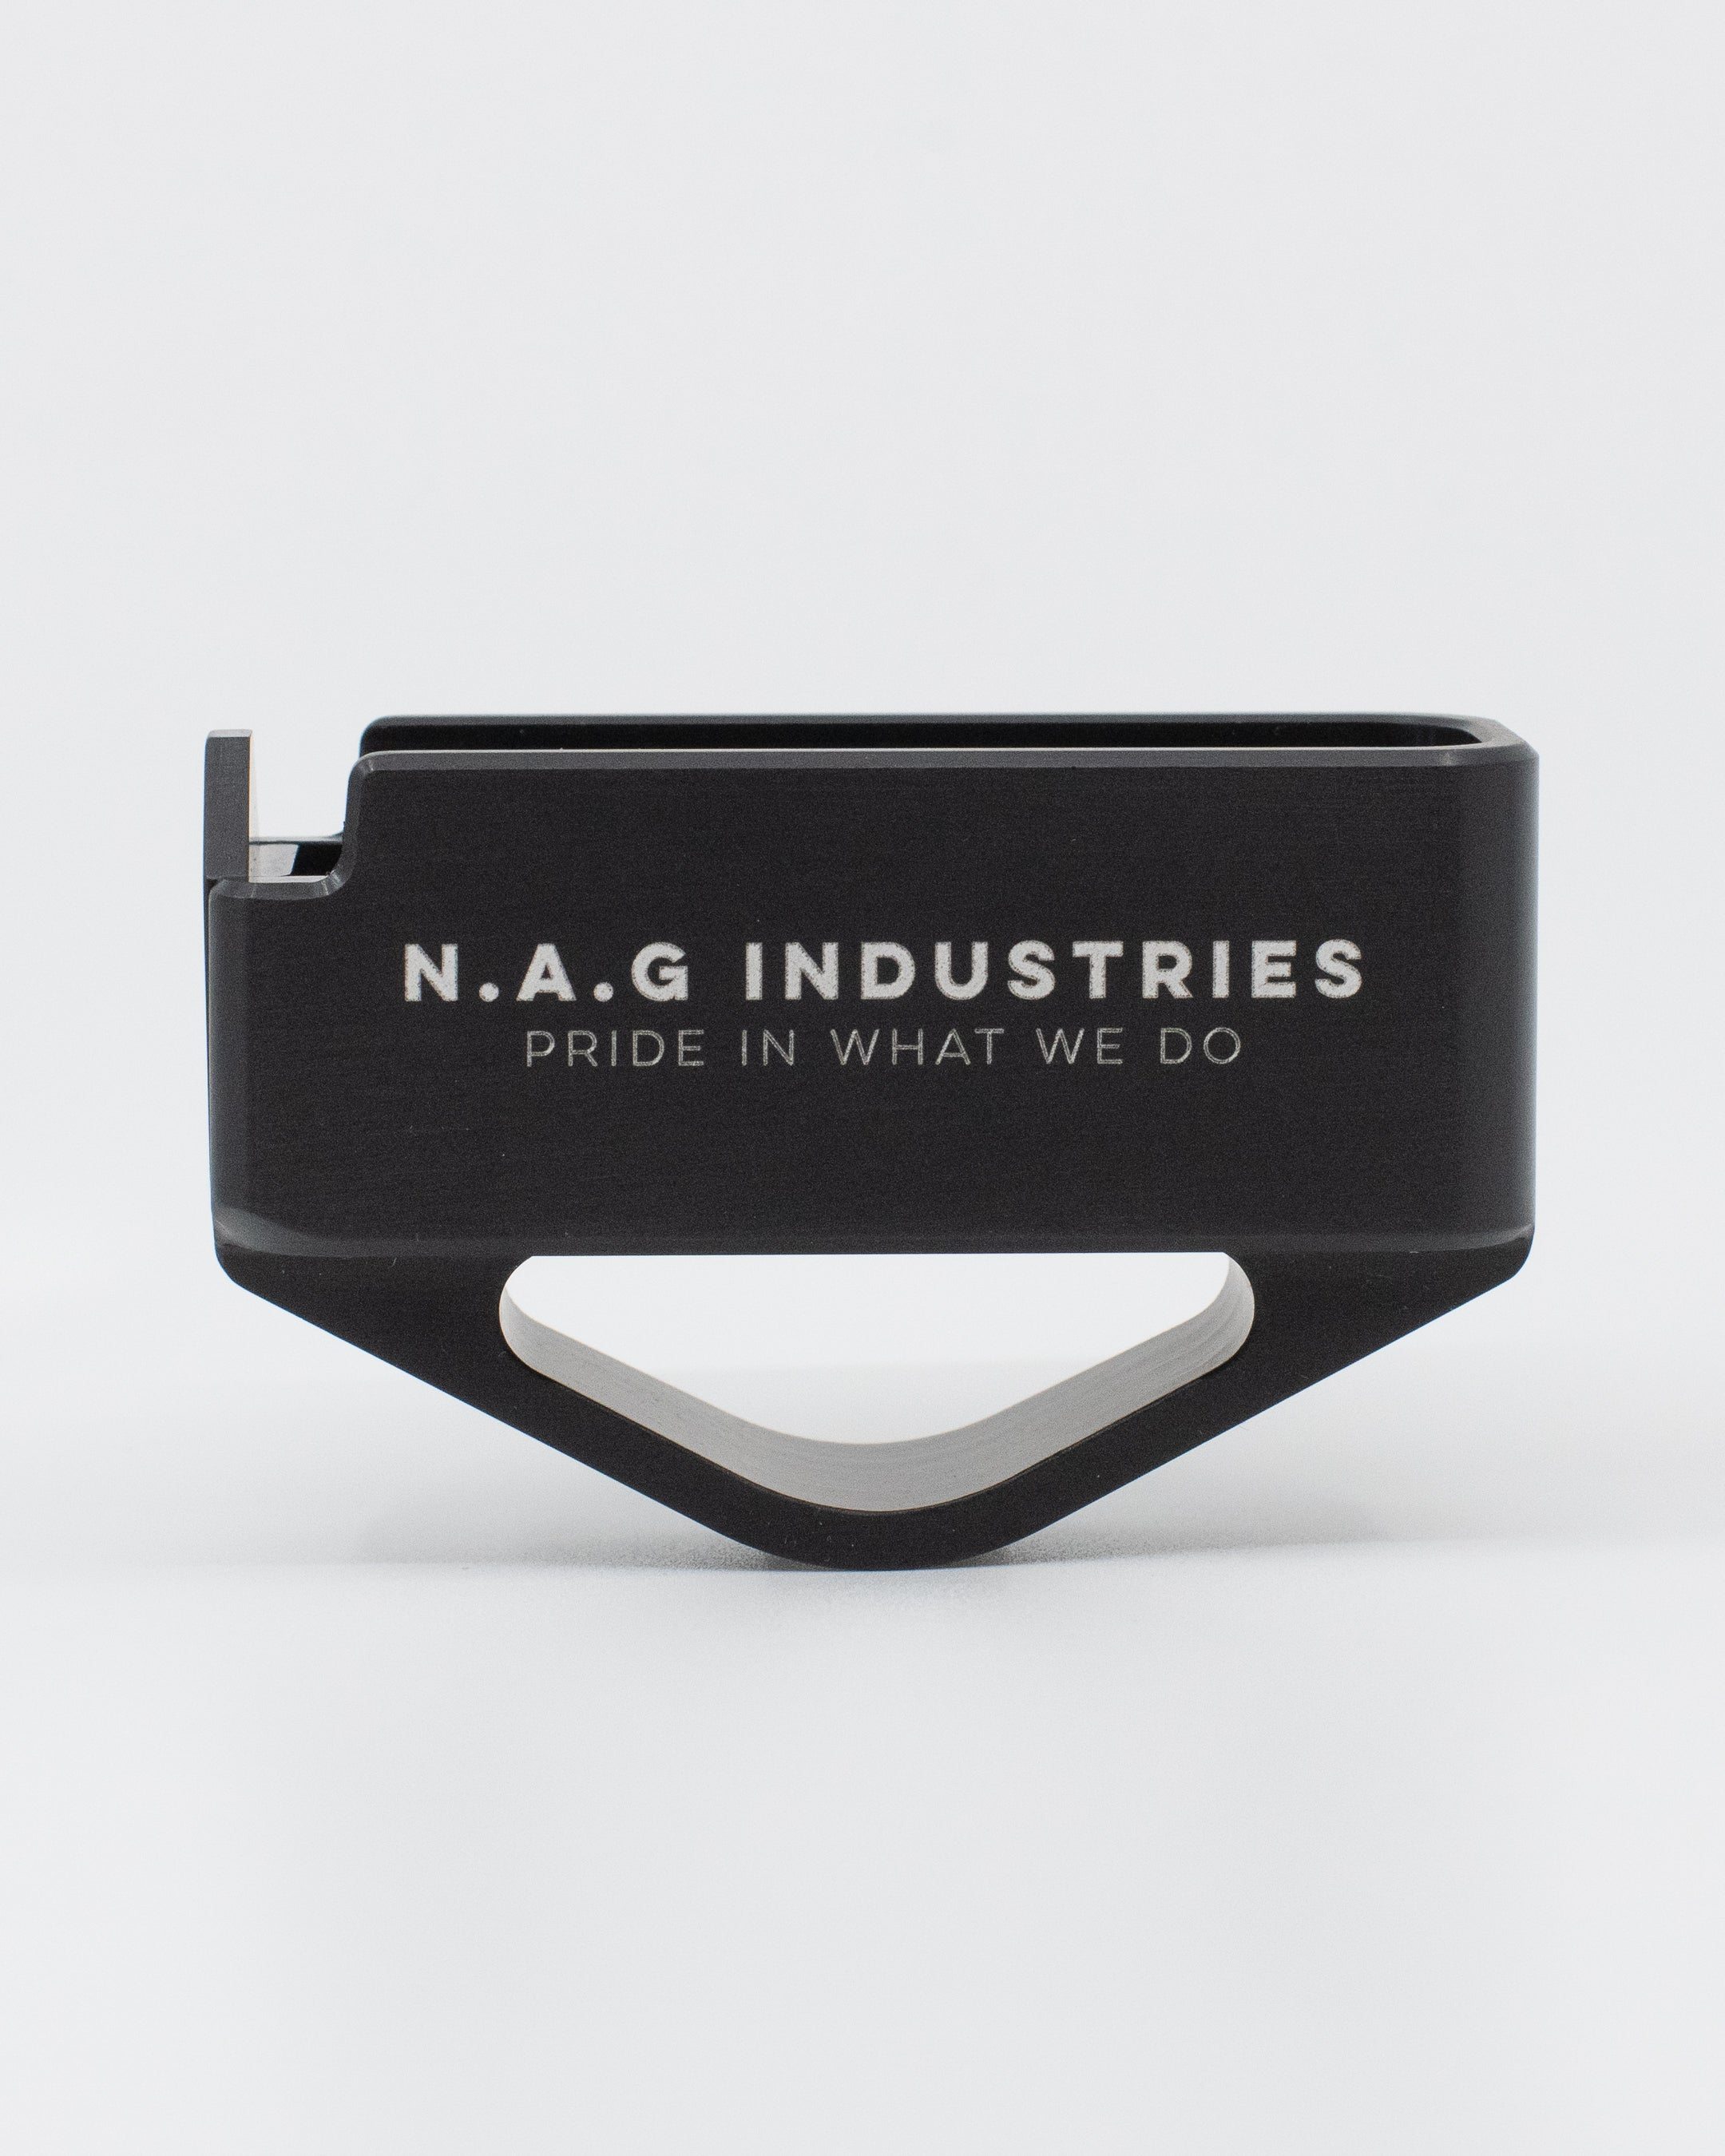 N.A.G Customs +5 Extended Magazine Plate for Lancer Magazines